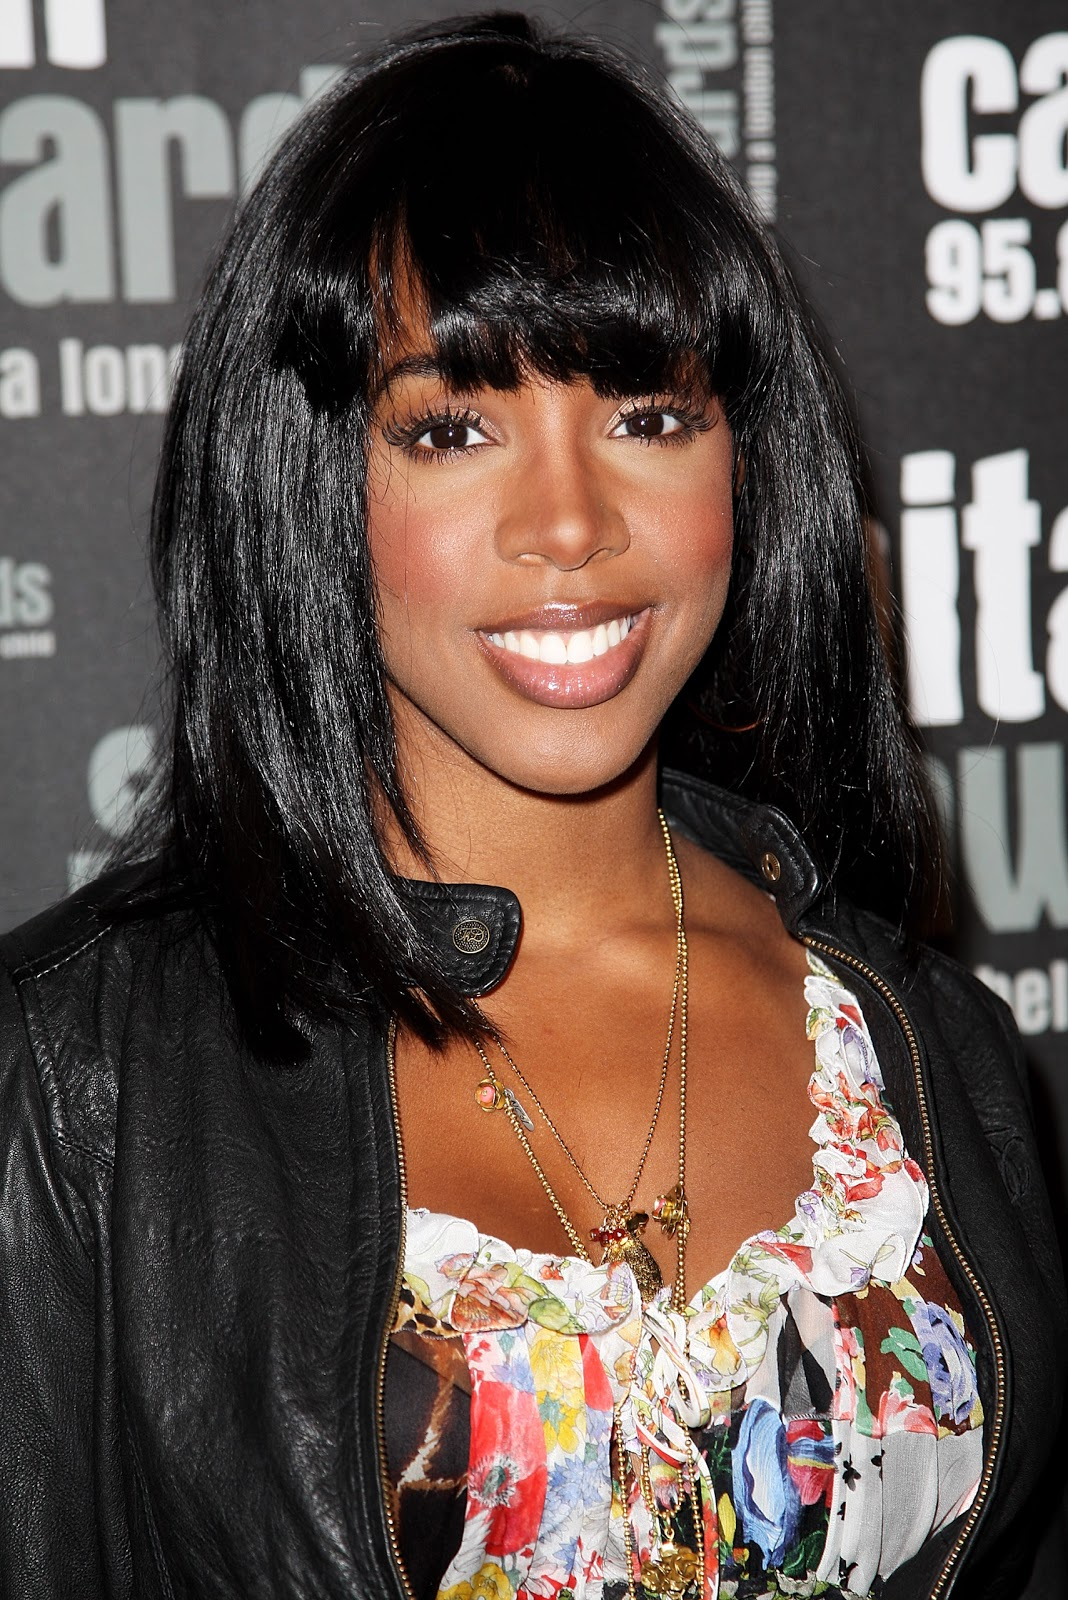 http://1.bp.blogspot.com/-13TpoHp1eRU/UB2JwcZe1DI/AAAAAAAAFP4/8JO-U9zhRGw/s1600/Kelly-Rowland-hairstyle-pictures-singer-actress-celebrity-on+and+on-Kelly-Rowlands-wallpapers+(1).jpg